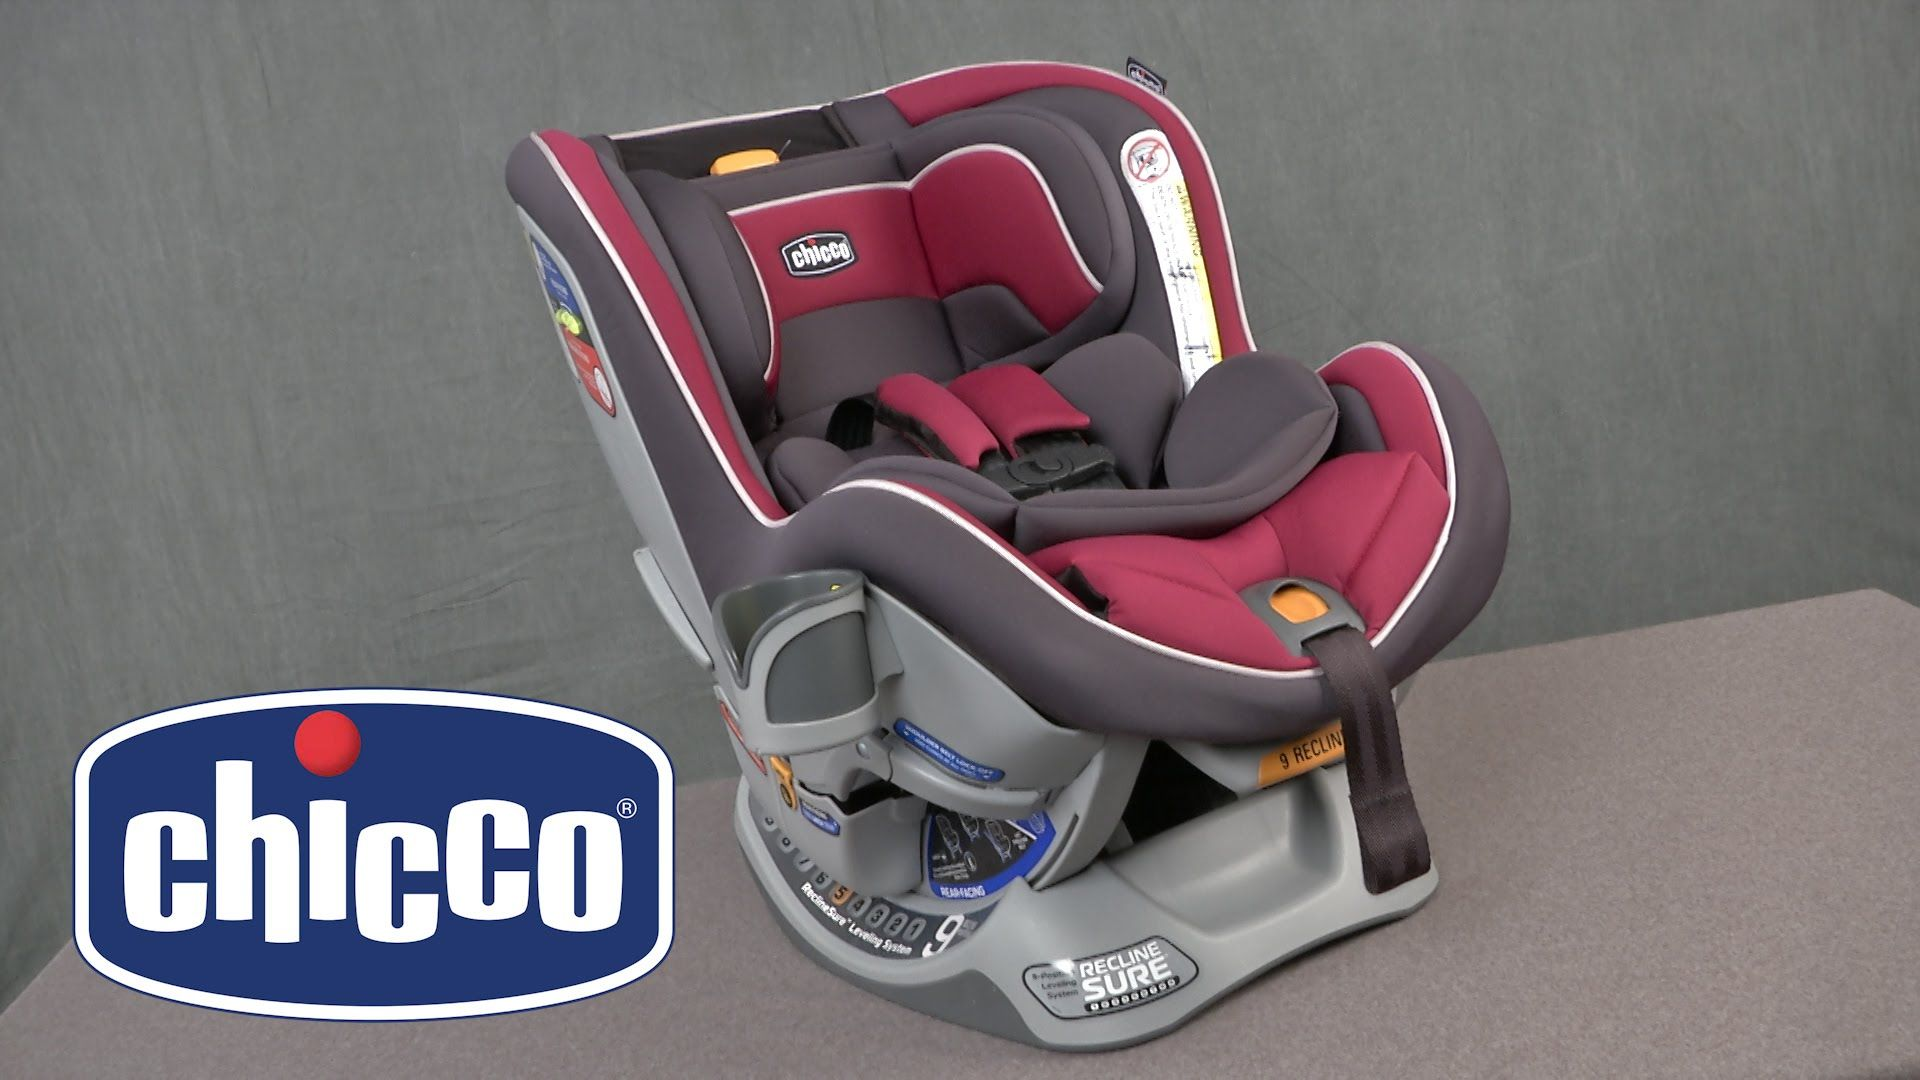 Chicco NextFit Convertible Car Seat Rear Facing And Forward Designed